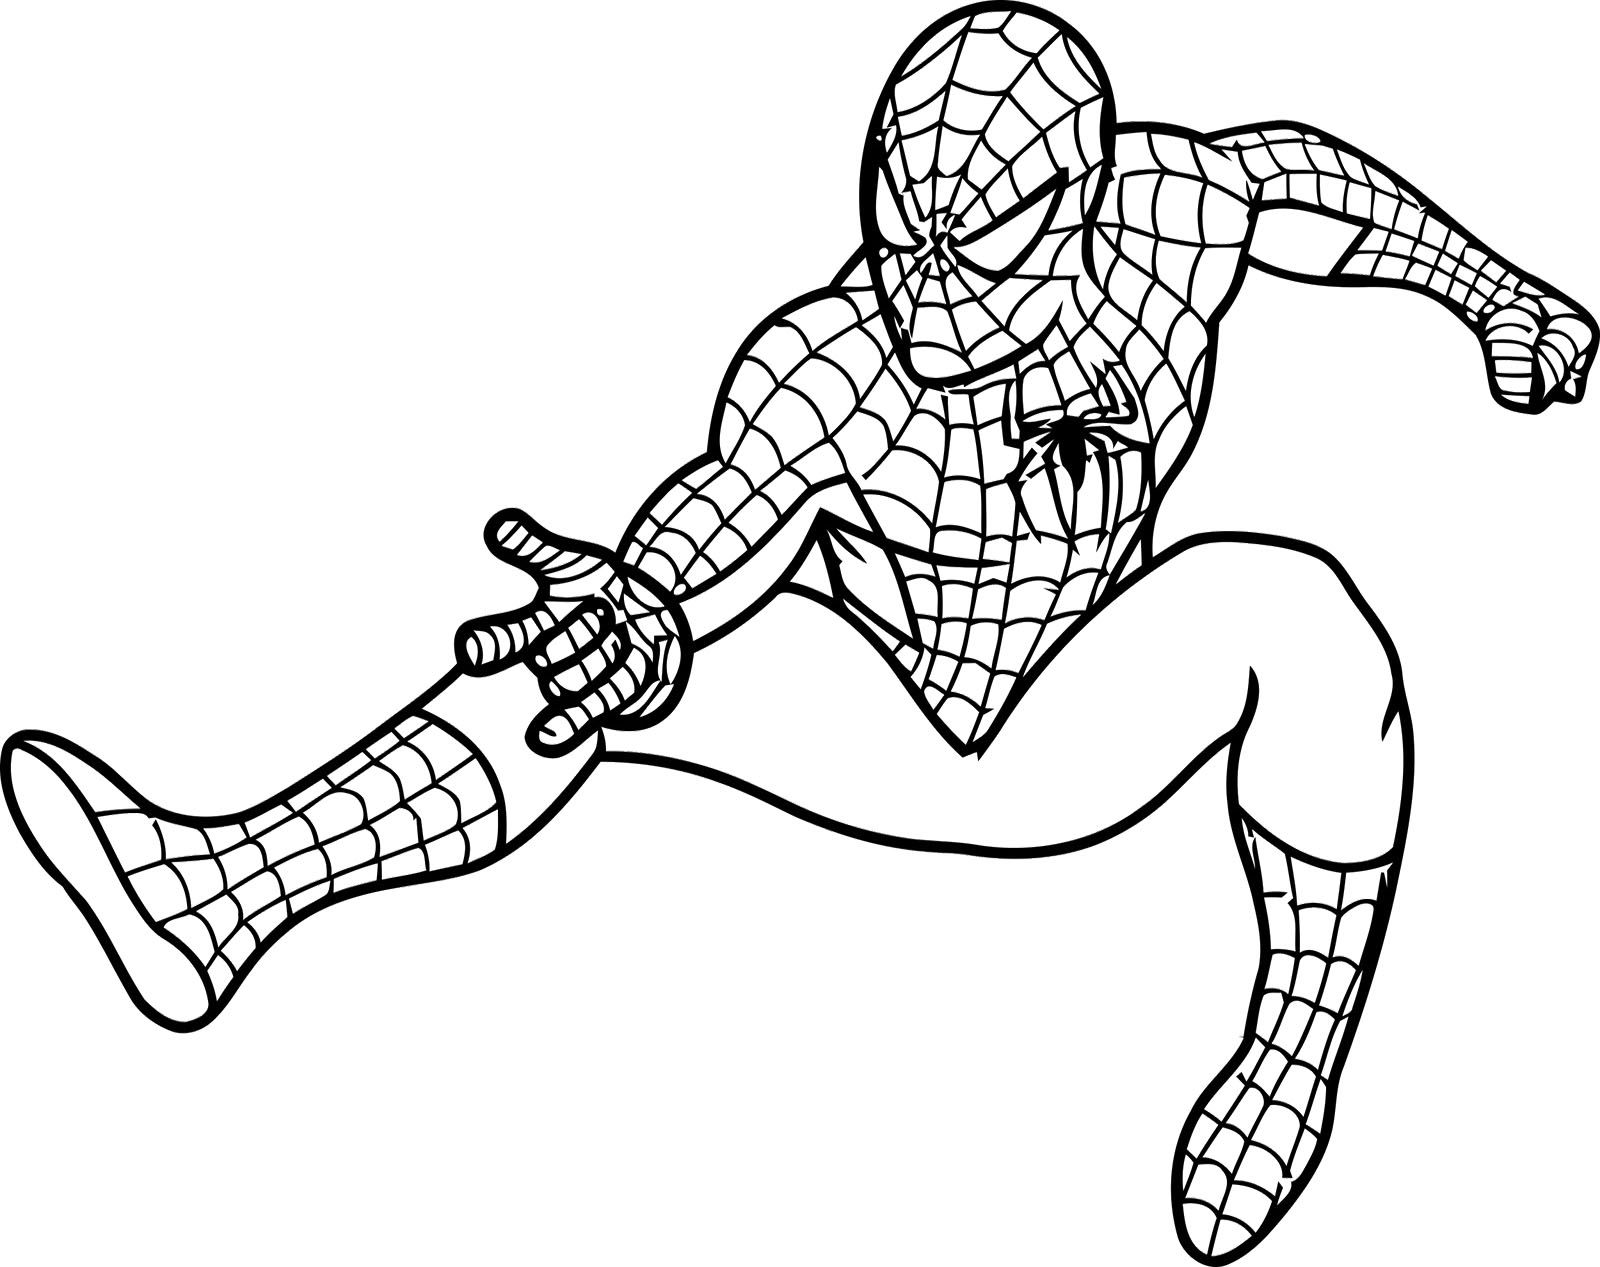 Spiderman spider man black and white clipart clipartfest 2.